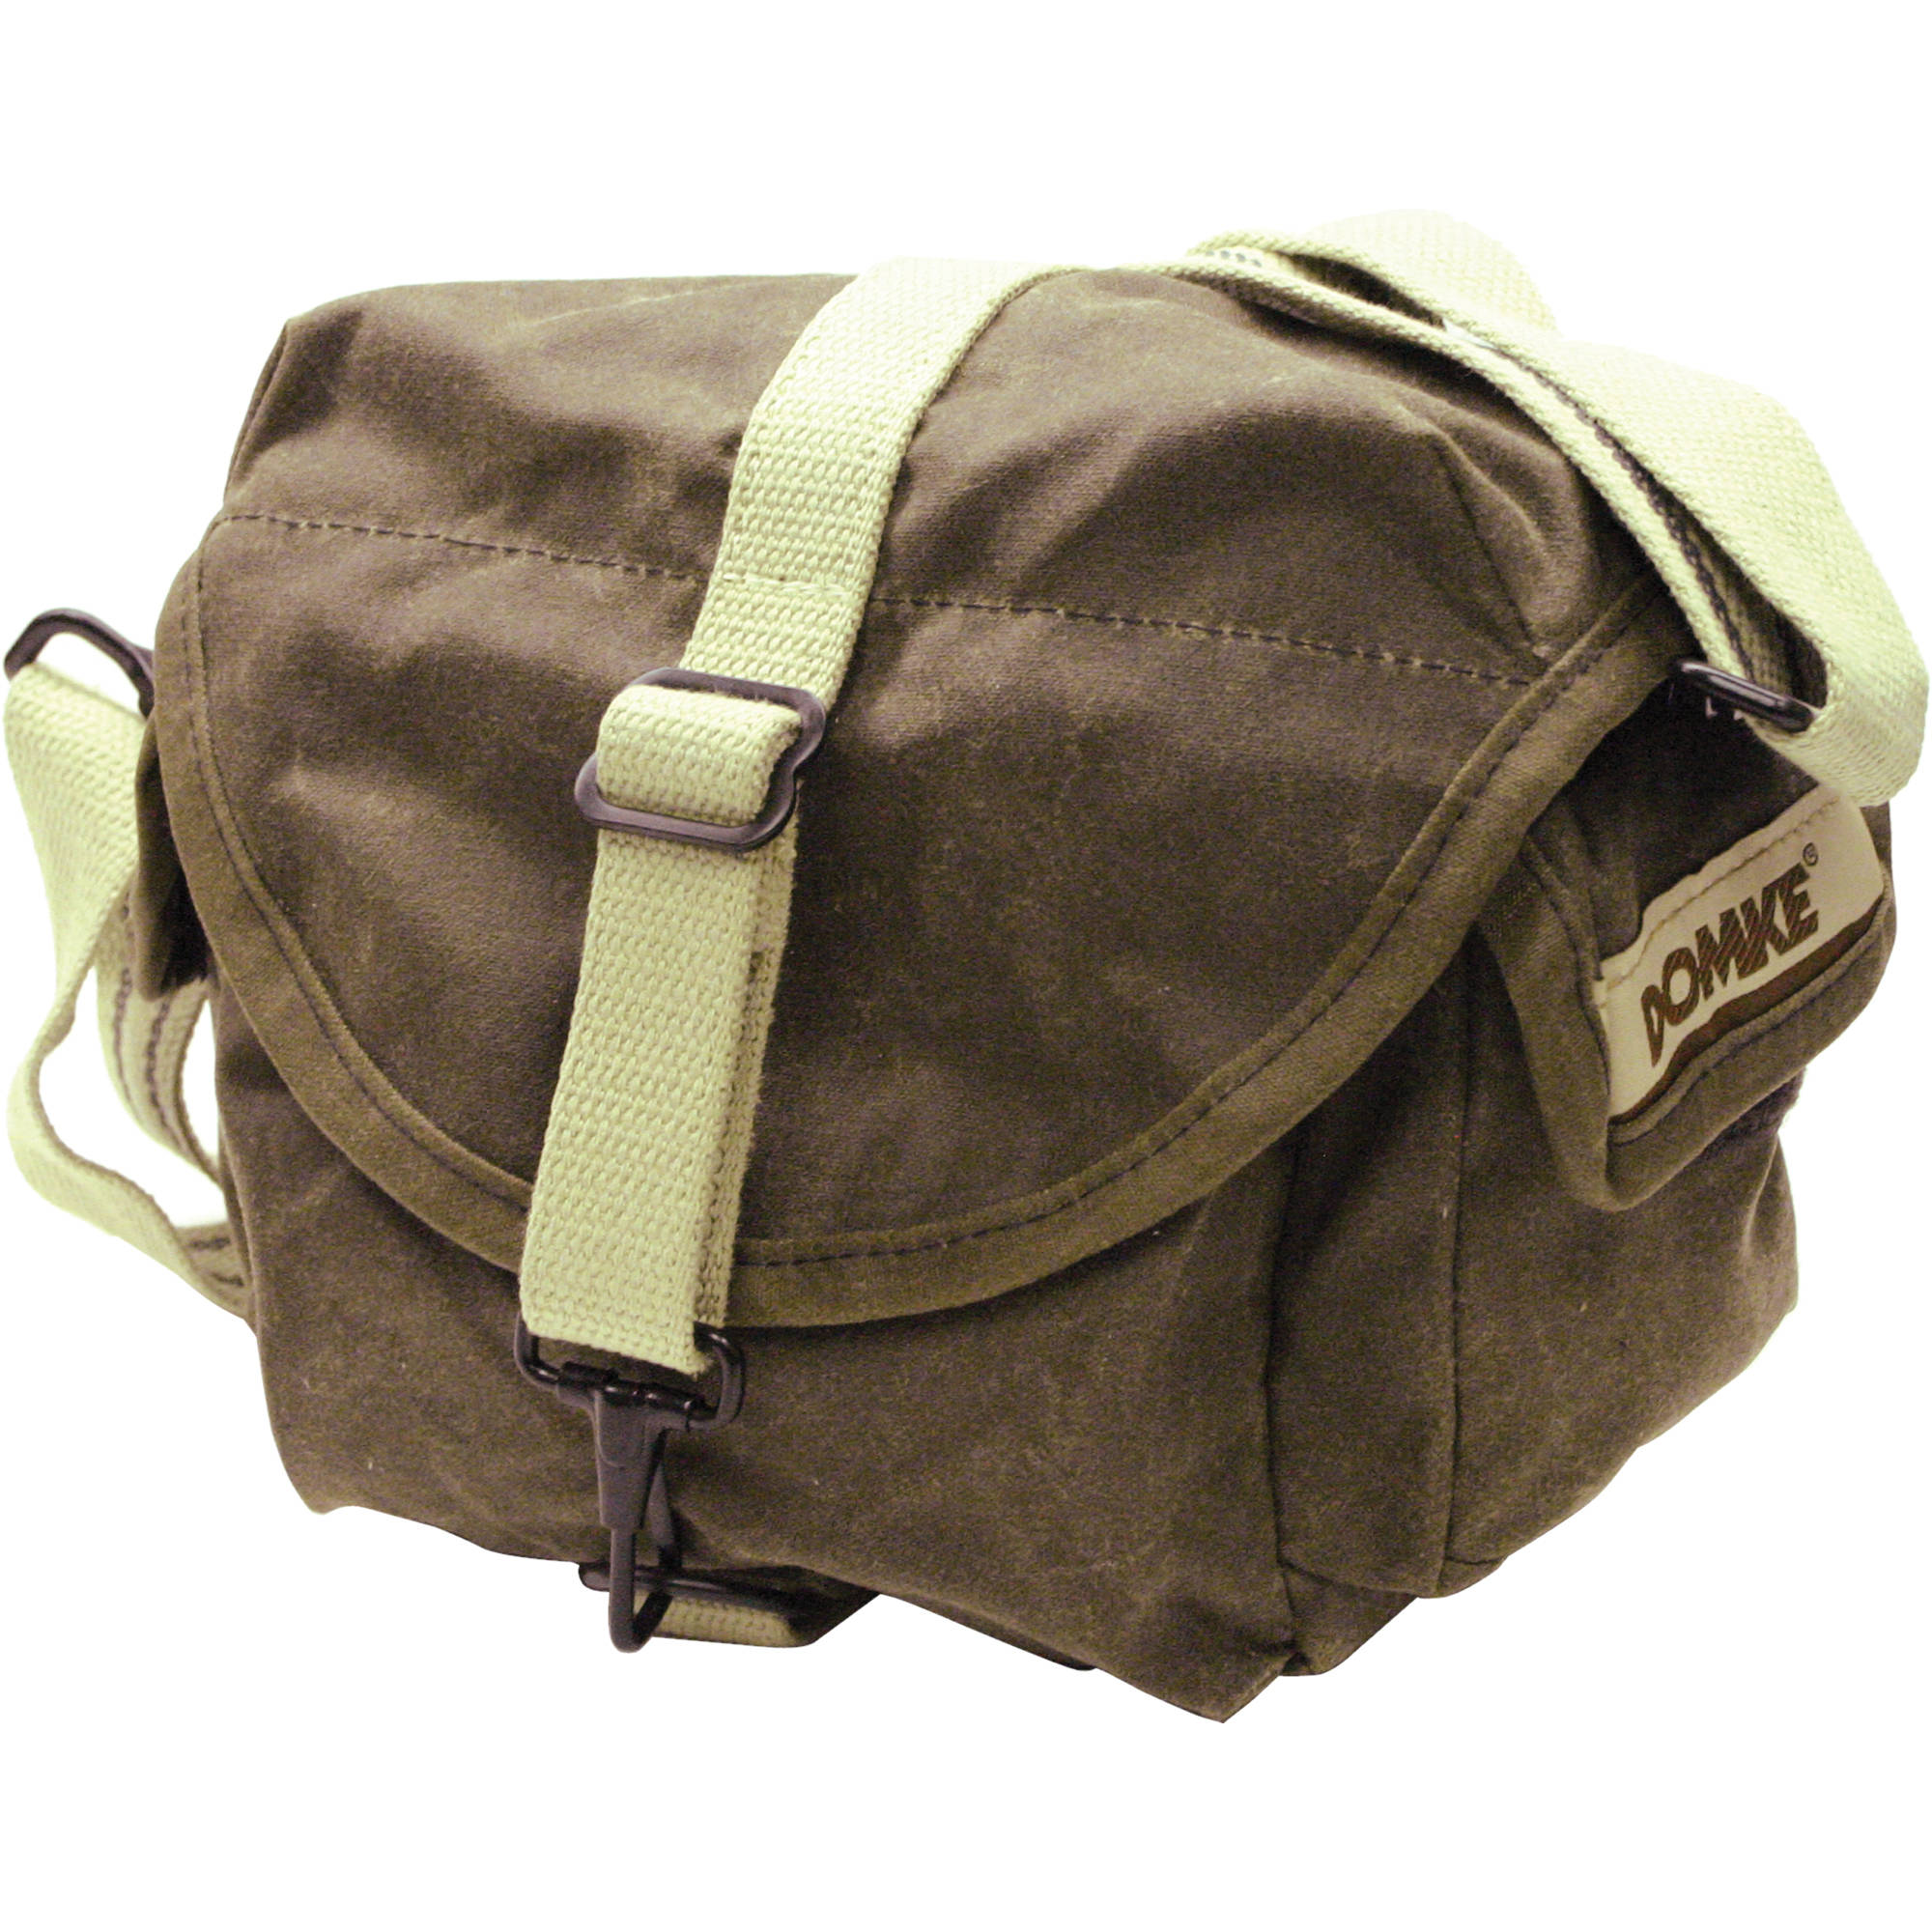 Image Result For Small Shoulder Bags